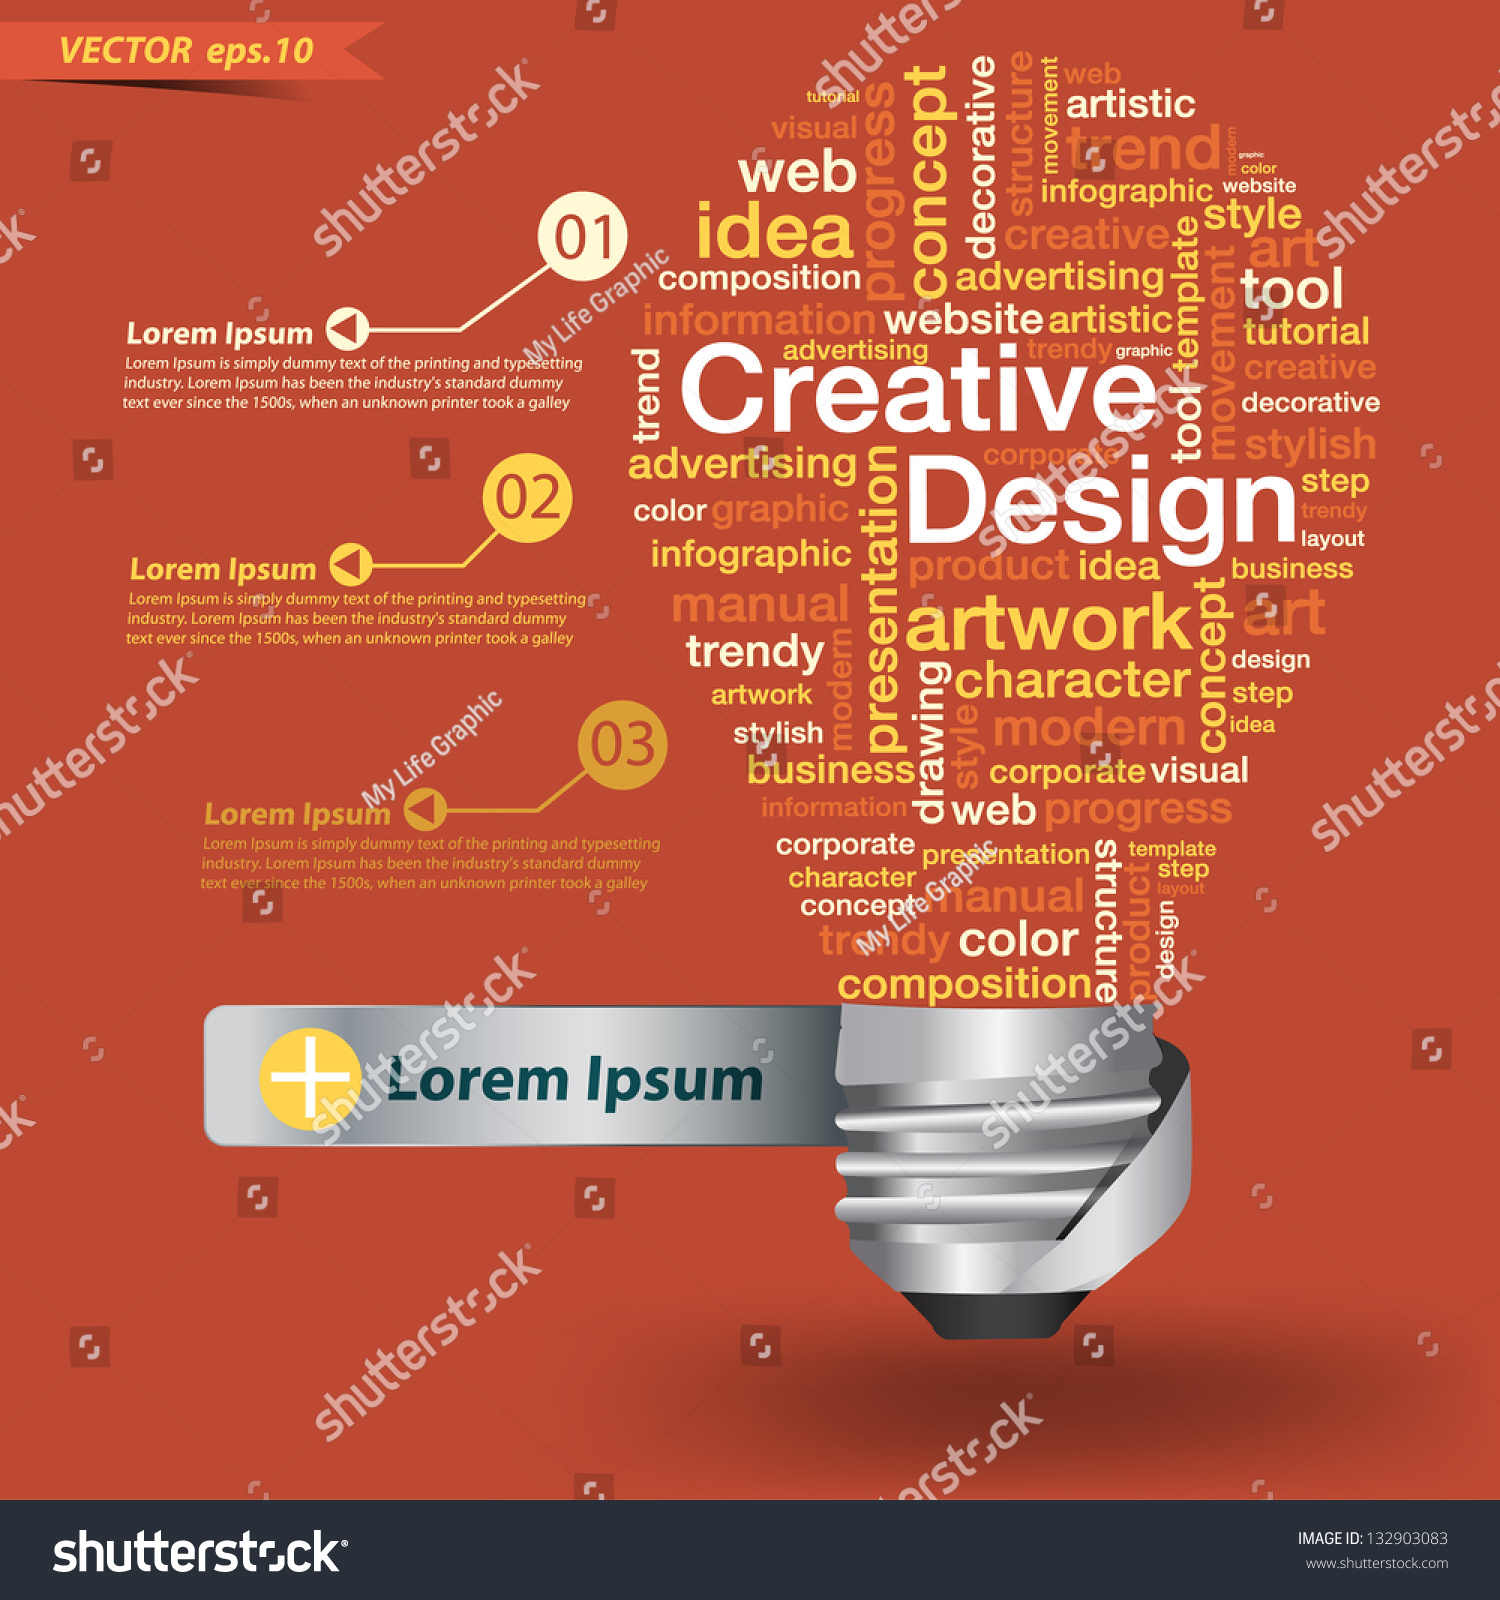 creative light bulb creative design concept stock vector  creative light bulb creative design concept of word cloud vector illustration modern template design